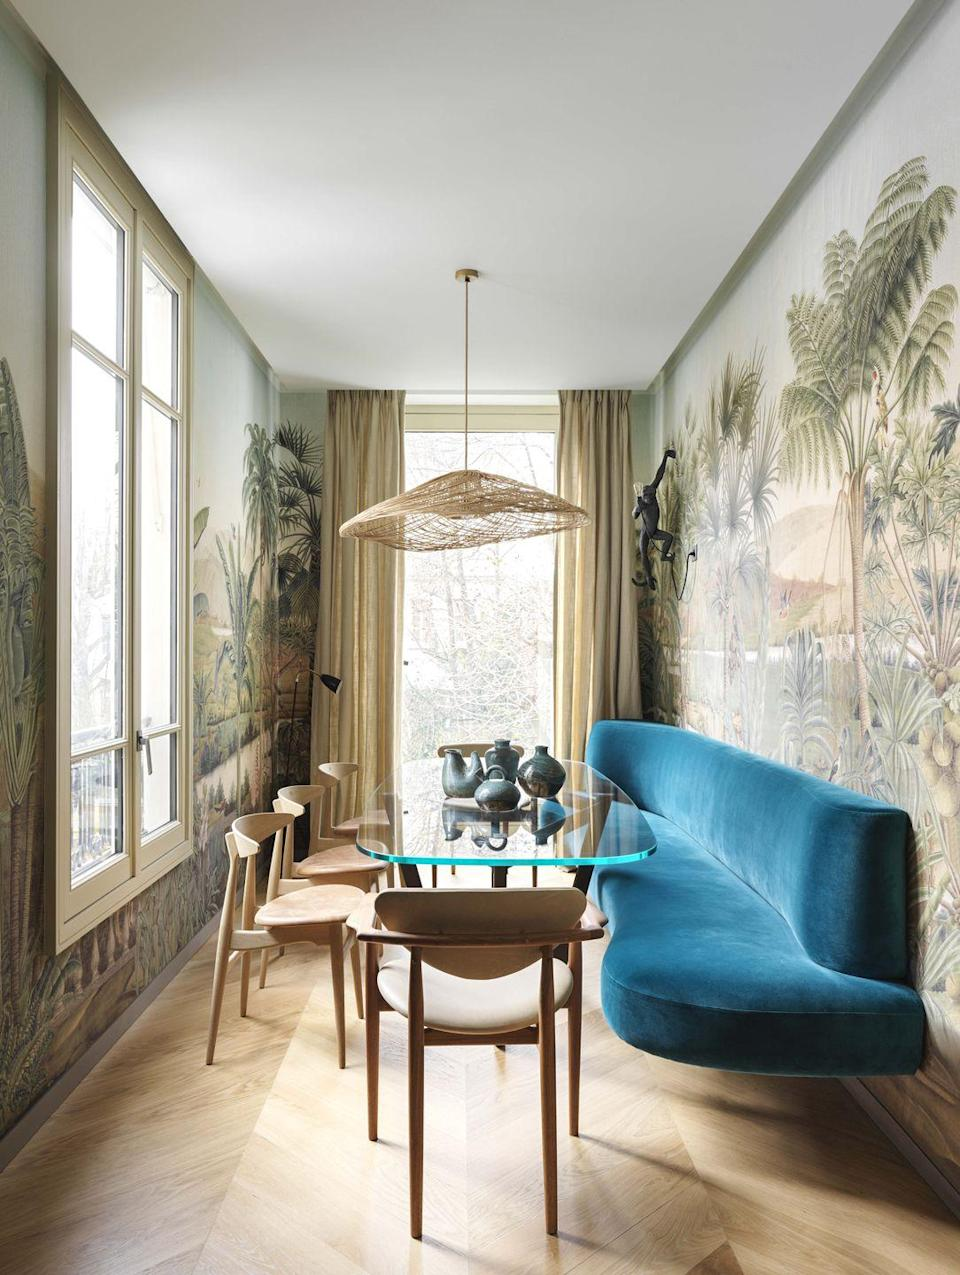 """<p>This less-than-ideally shaped dining area allowed design firm <a href=""""https://leberrevevaud.com/"""" rel=""""nofollow noopener"""" target=""""_blank"""" data-ylk=""""slk:Le Berre Vevaud"""" class=""""link rapid-noclick-resp"""">Le Berre Vevaud</a> to get creative with their clients' <a href=""""https://www.veranda.com/home-decorators/a30145144/le-berre-vevaud-paris-apartment/"""" rel=""""nofollow noopener"""" target=""""_blank"""" data-ylk=""""slk:19th-century Parisian loft"""" class=""""link rapid-noclick-resp"""">19th-century Parisian loft</a>, reinventing it into a delightful space to gather with loved ones over a meal or cocktail. Besson's panoramic wallpaper inspired by the Napoleonic campaigns in Egypt, enameled porcelain monkey sconces from <a href=""""https://www.seletti.it/us/"""" rel=""""nofollow noopener"""" target=""""_blank"""" data-ylk=""""slk:Seletti"""" class=""""link rapid-noclick-resp"""">Seletti</a>, and a hovering banquette draped in <a href=""""https://www.pierrefrey.com/en/"""" rel=""""nofollow noopener"""" target=""""_blank"""" data-ylk=""""slk:Pierre Frey"""" class=""""link rapid-noclick-resp"""">Pierre Frey</a> velvet make the room feel worlds away—certainly not between the Place de la Concorde and Élysée Palace.</p>"""